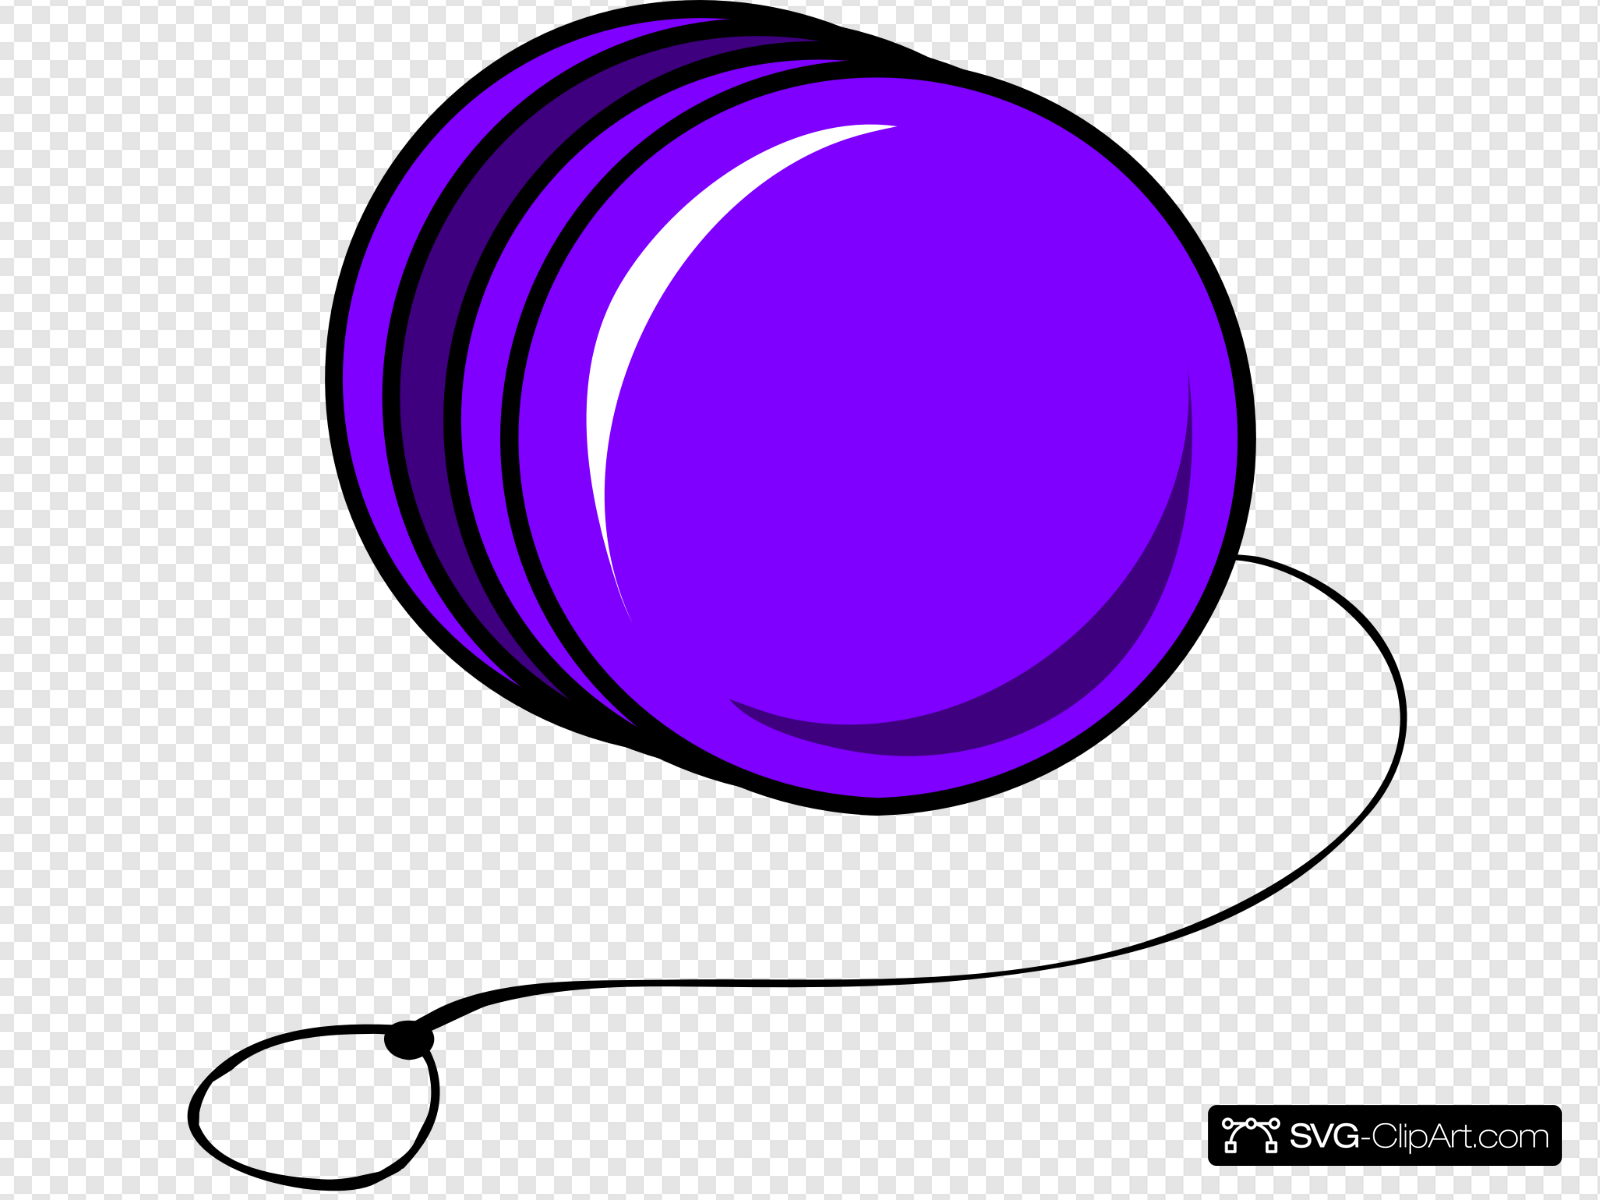 image freeuse stock Yoyo clipart purple. Cartoon clip art icon